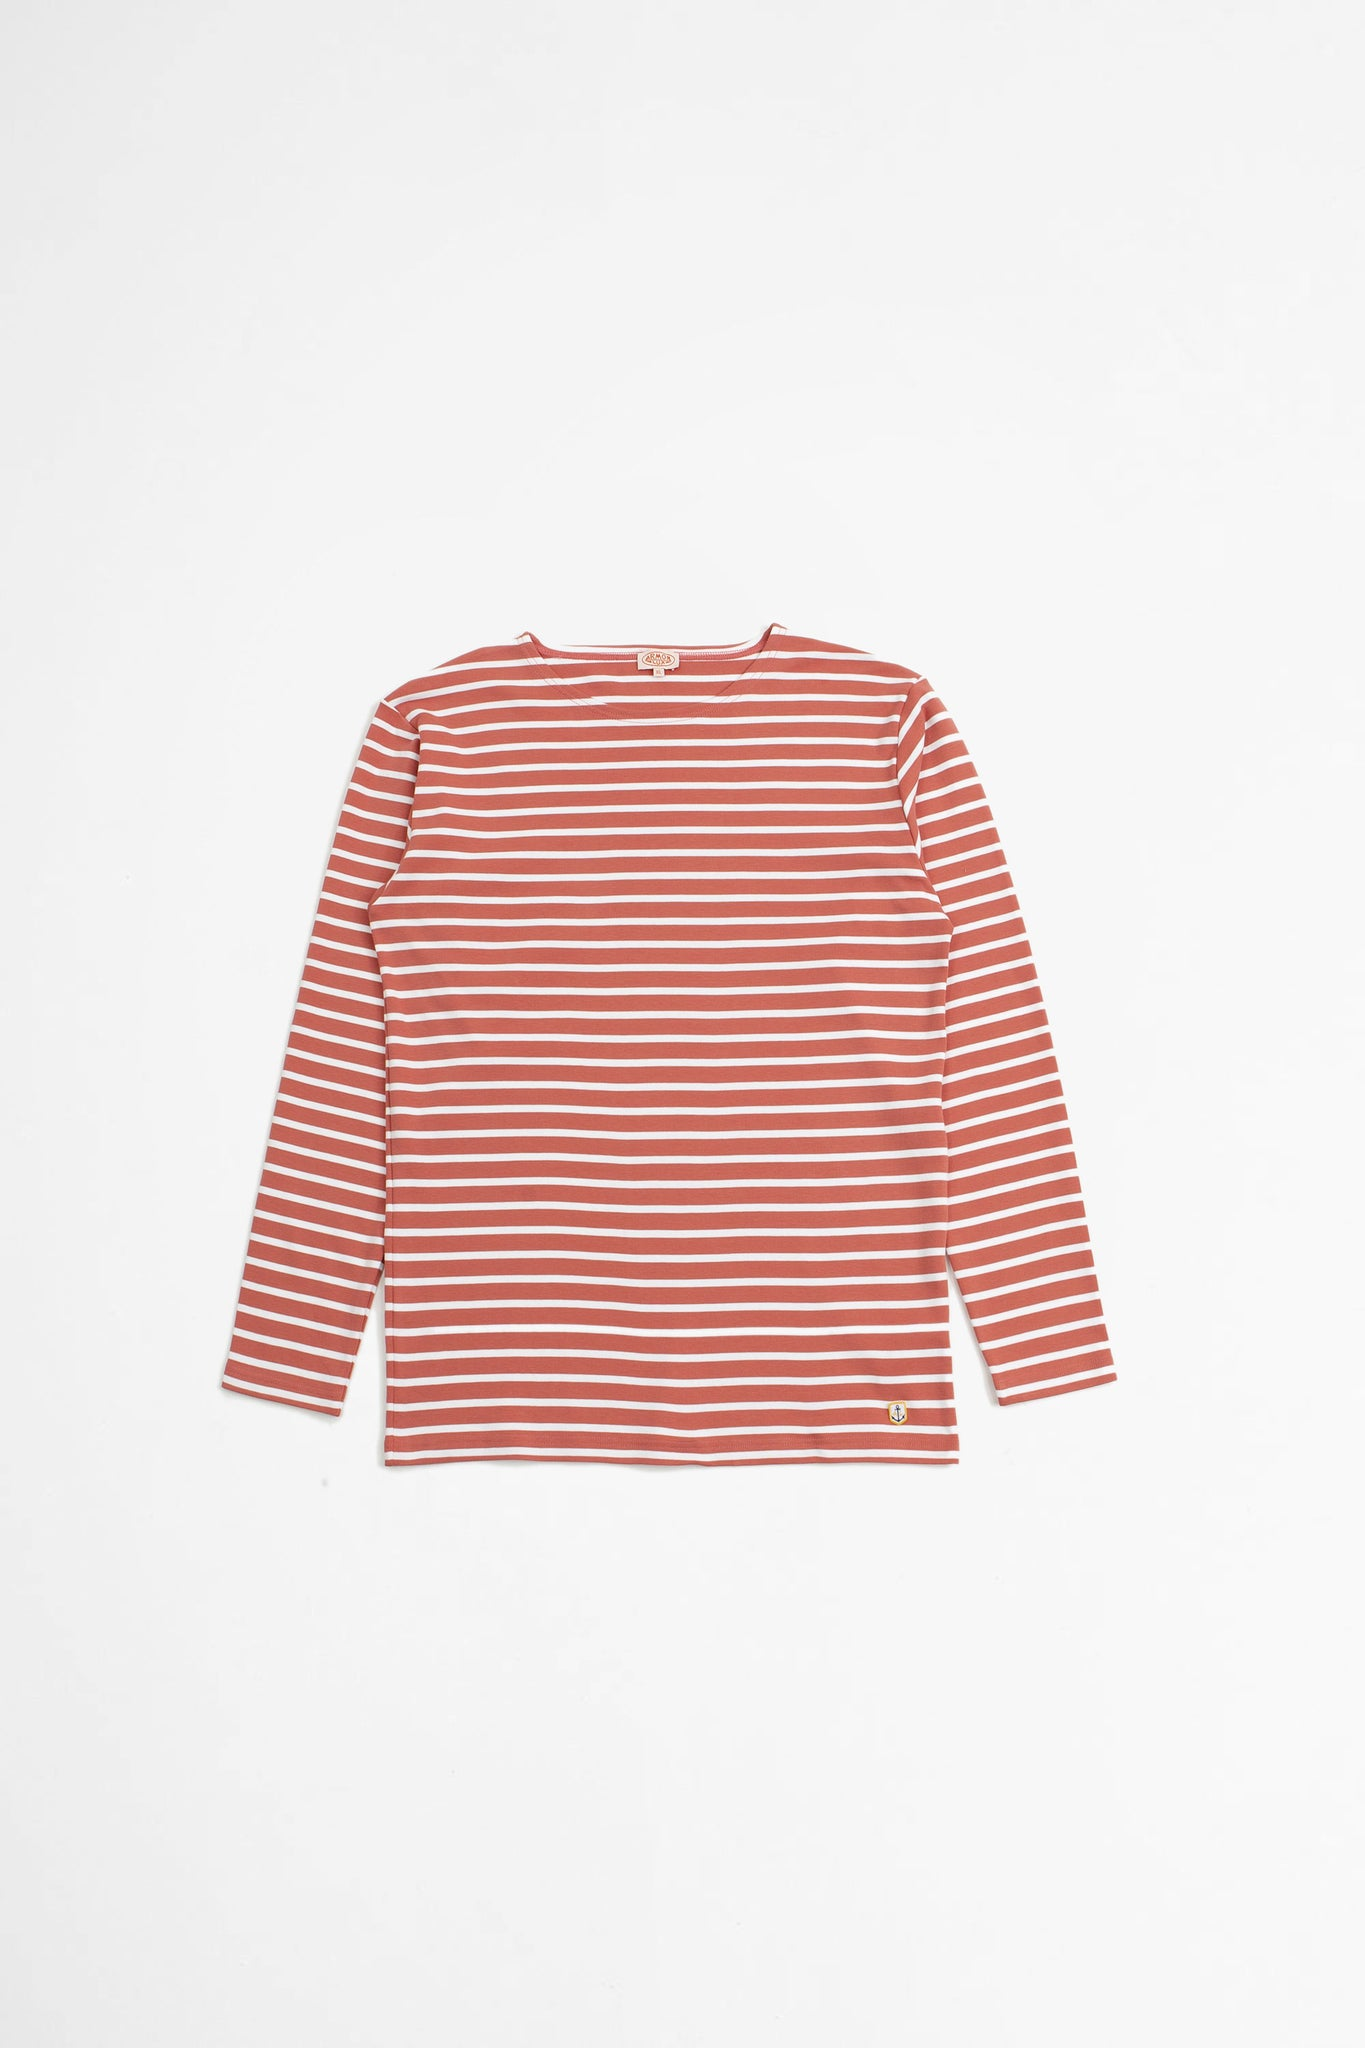 Sailor t-shirt Houat rosewood/white